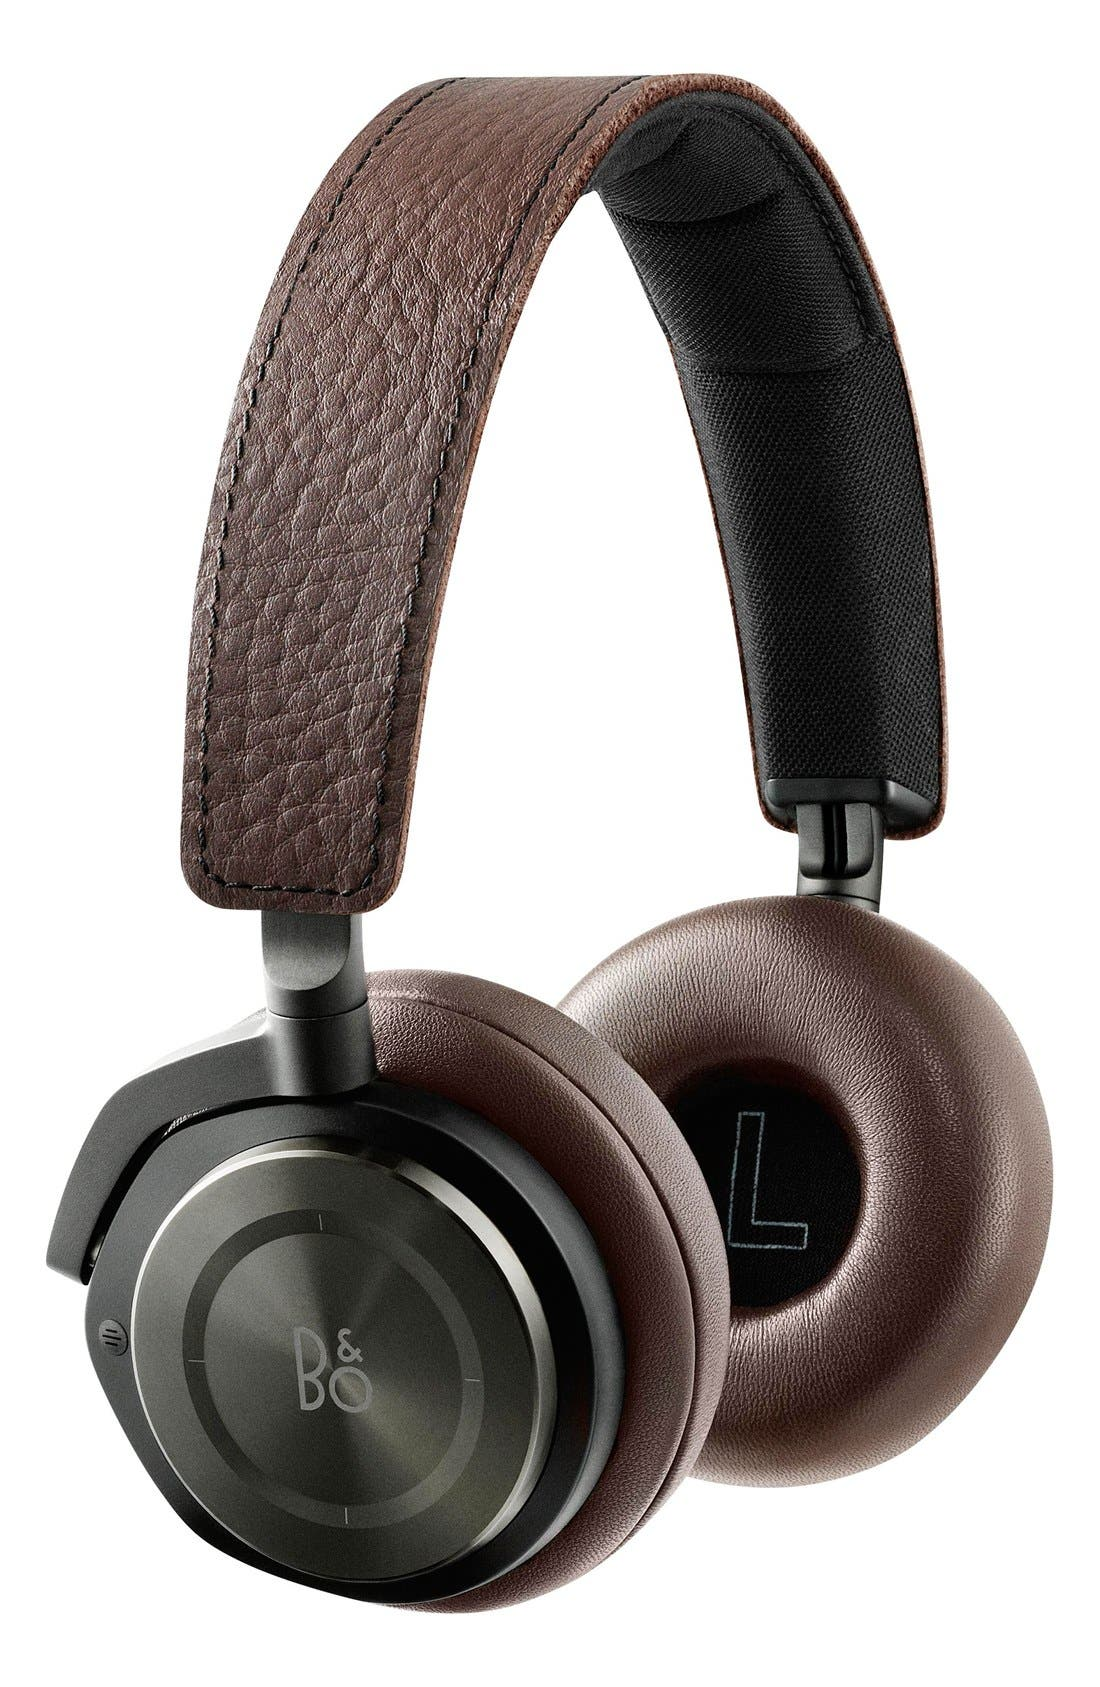 H8 ANC Over-Ear Bluetooth<sup>®</sup> Headphones,                             Main thumbnail 1, color,                             206